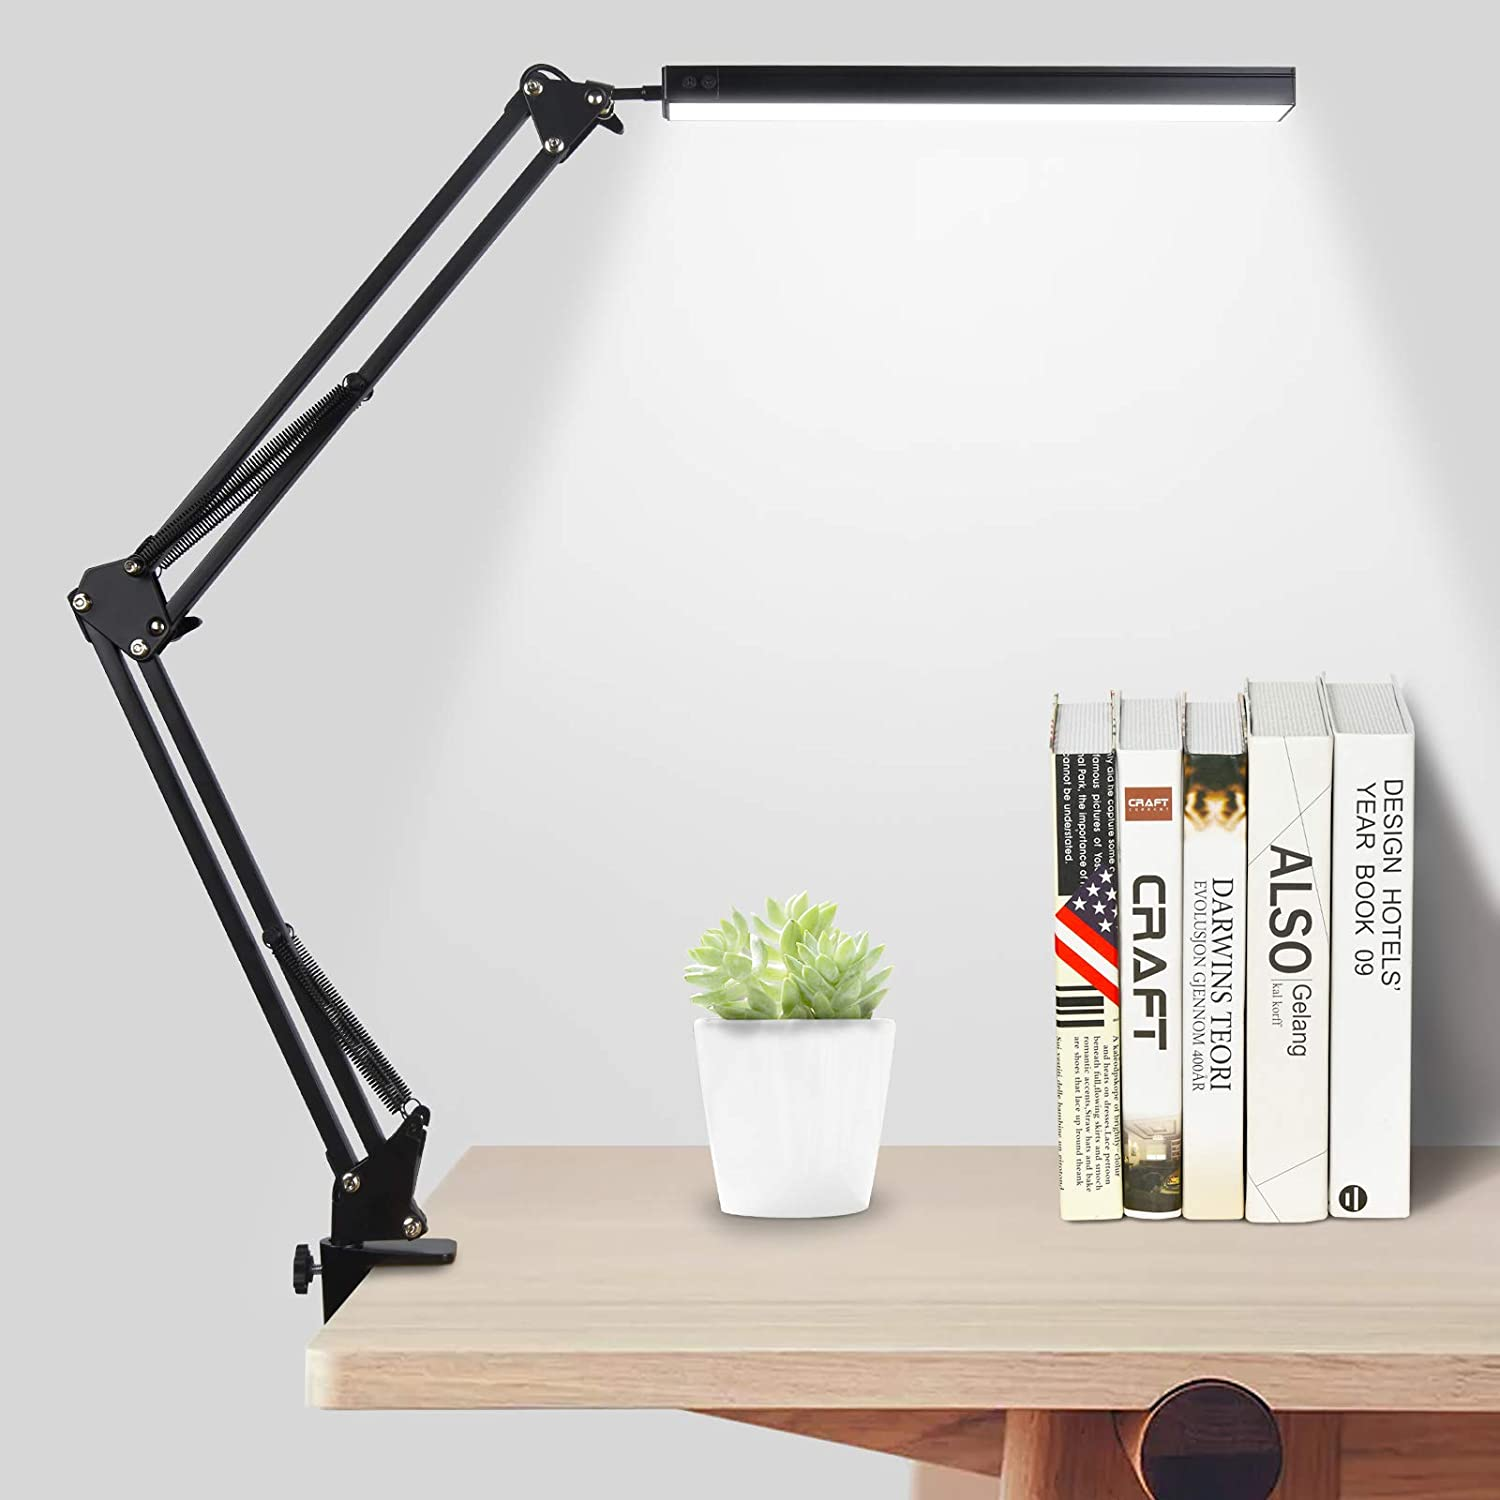 Shiny Flower LED Ranking TOP2 Desk Lamp Swing Arm Clamp Our shop most popular Adjustable with